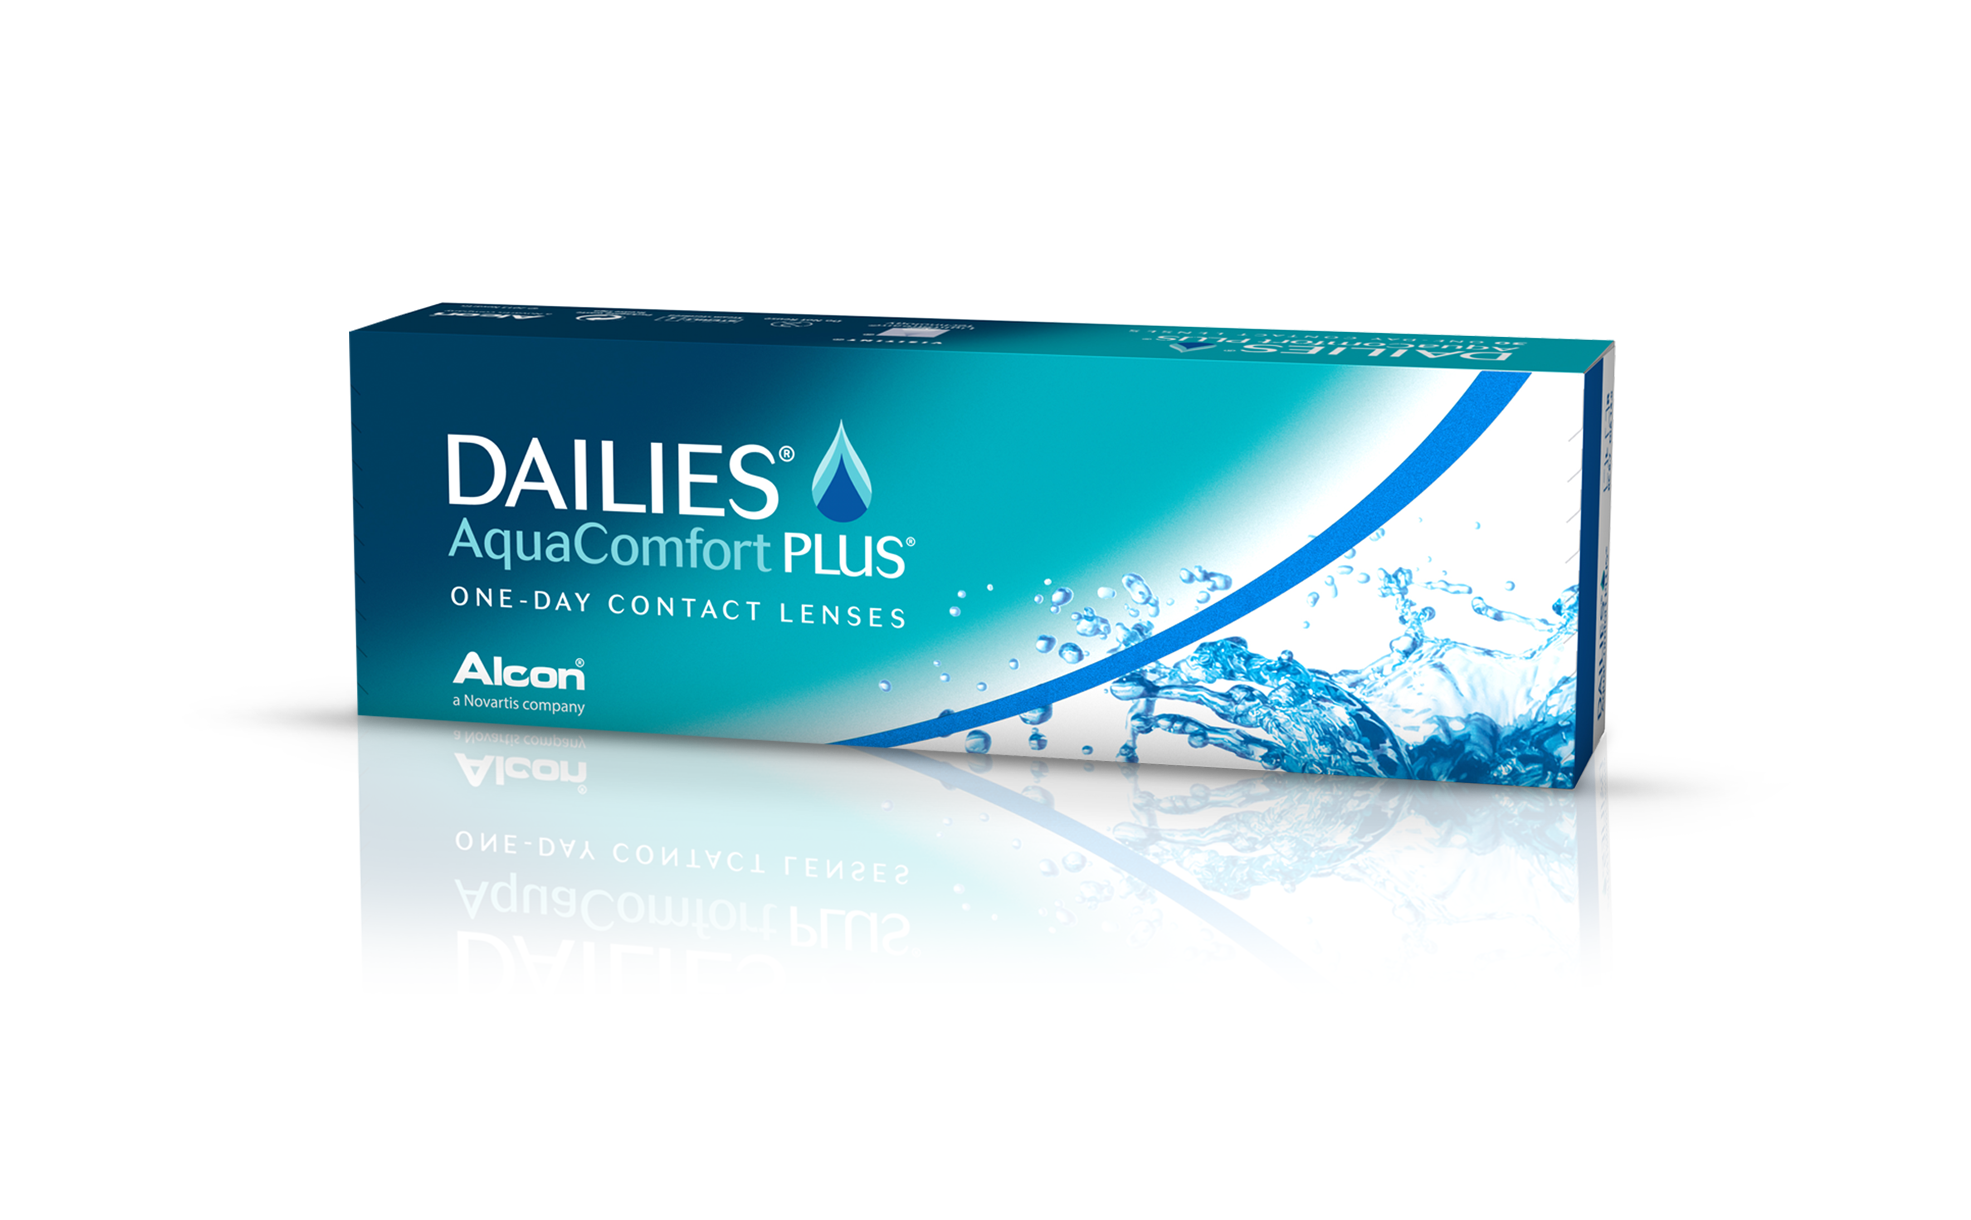 comforter developed day activated dailies ginger contact for moisture deliver img the throughout alcon aquacomfort power tag harnesses lenses archives blink of comfort it aqua refreshing mommy by